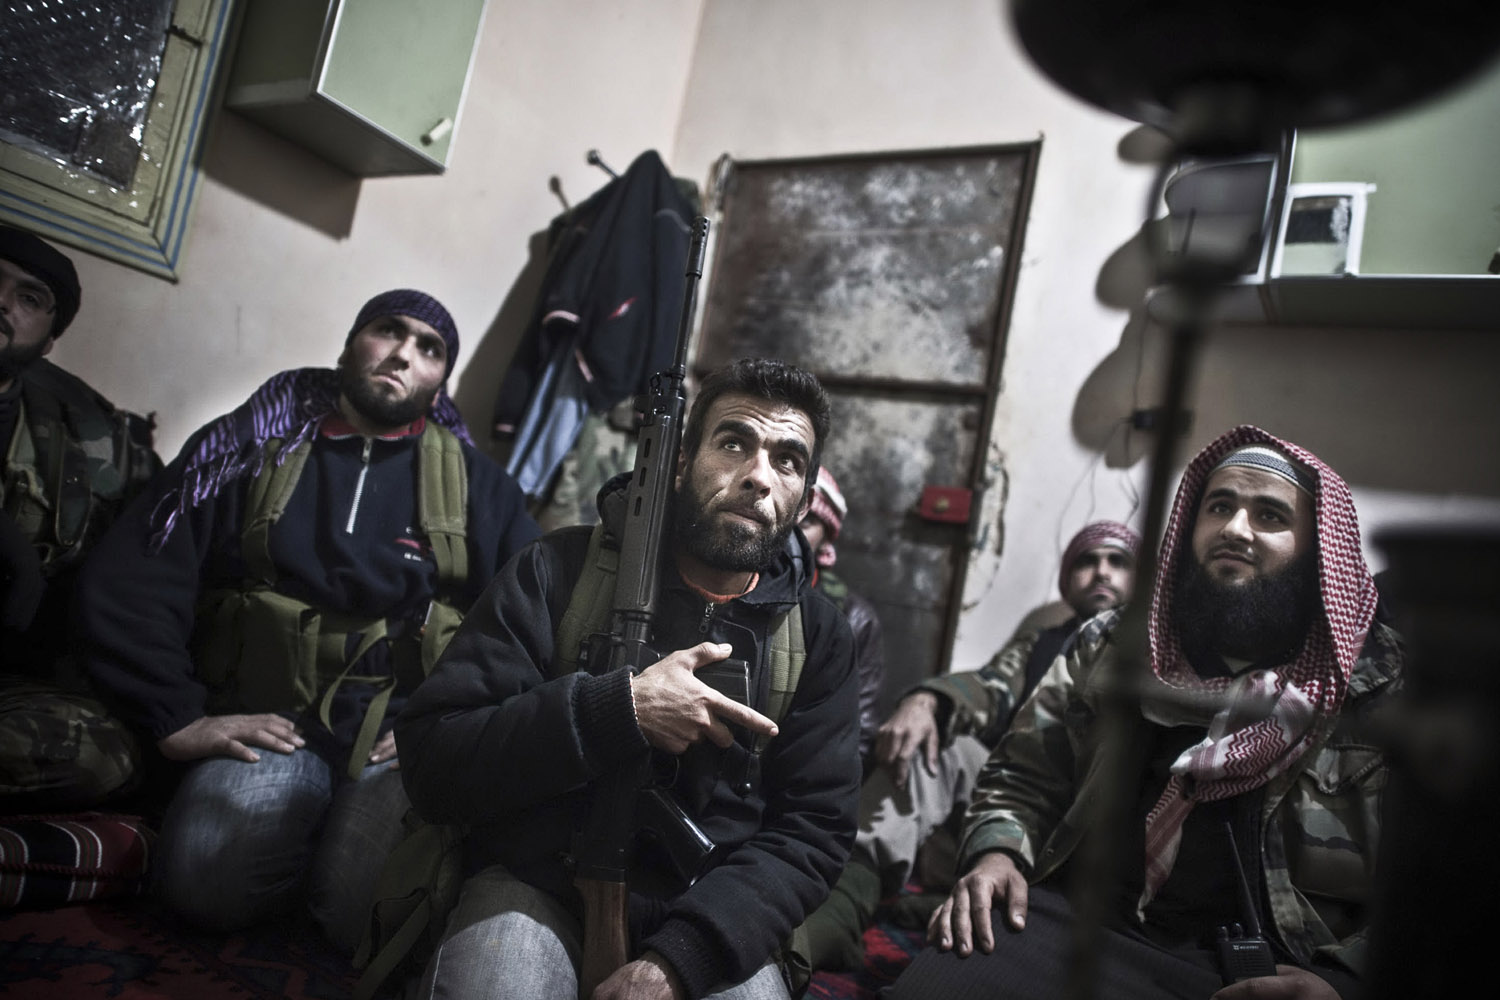 February 22, 2012. Free Syrian Army fighters pray before trying to enter Baba Amr in Syria.